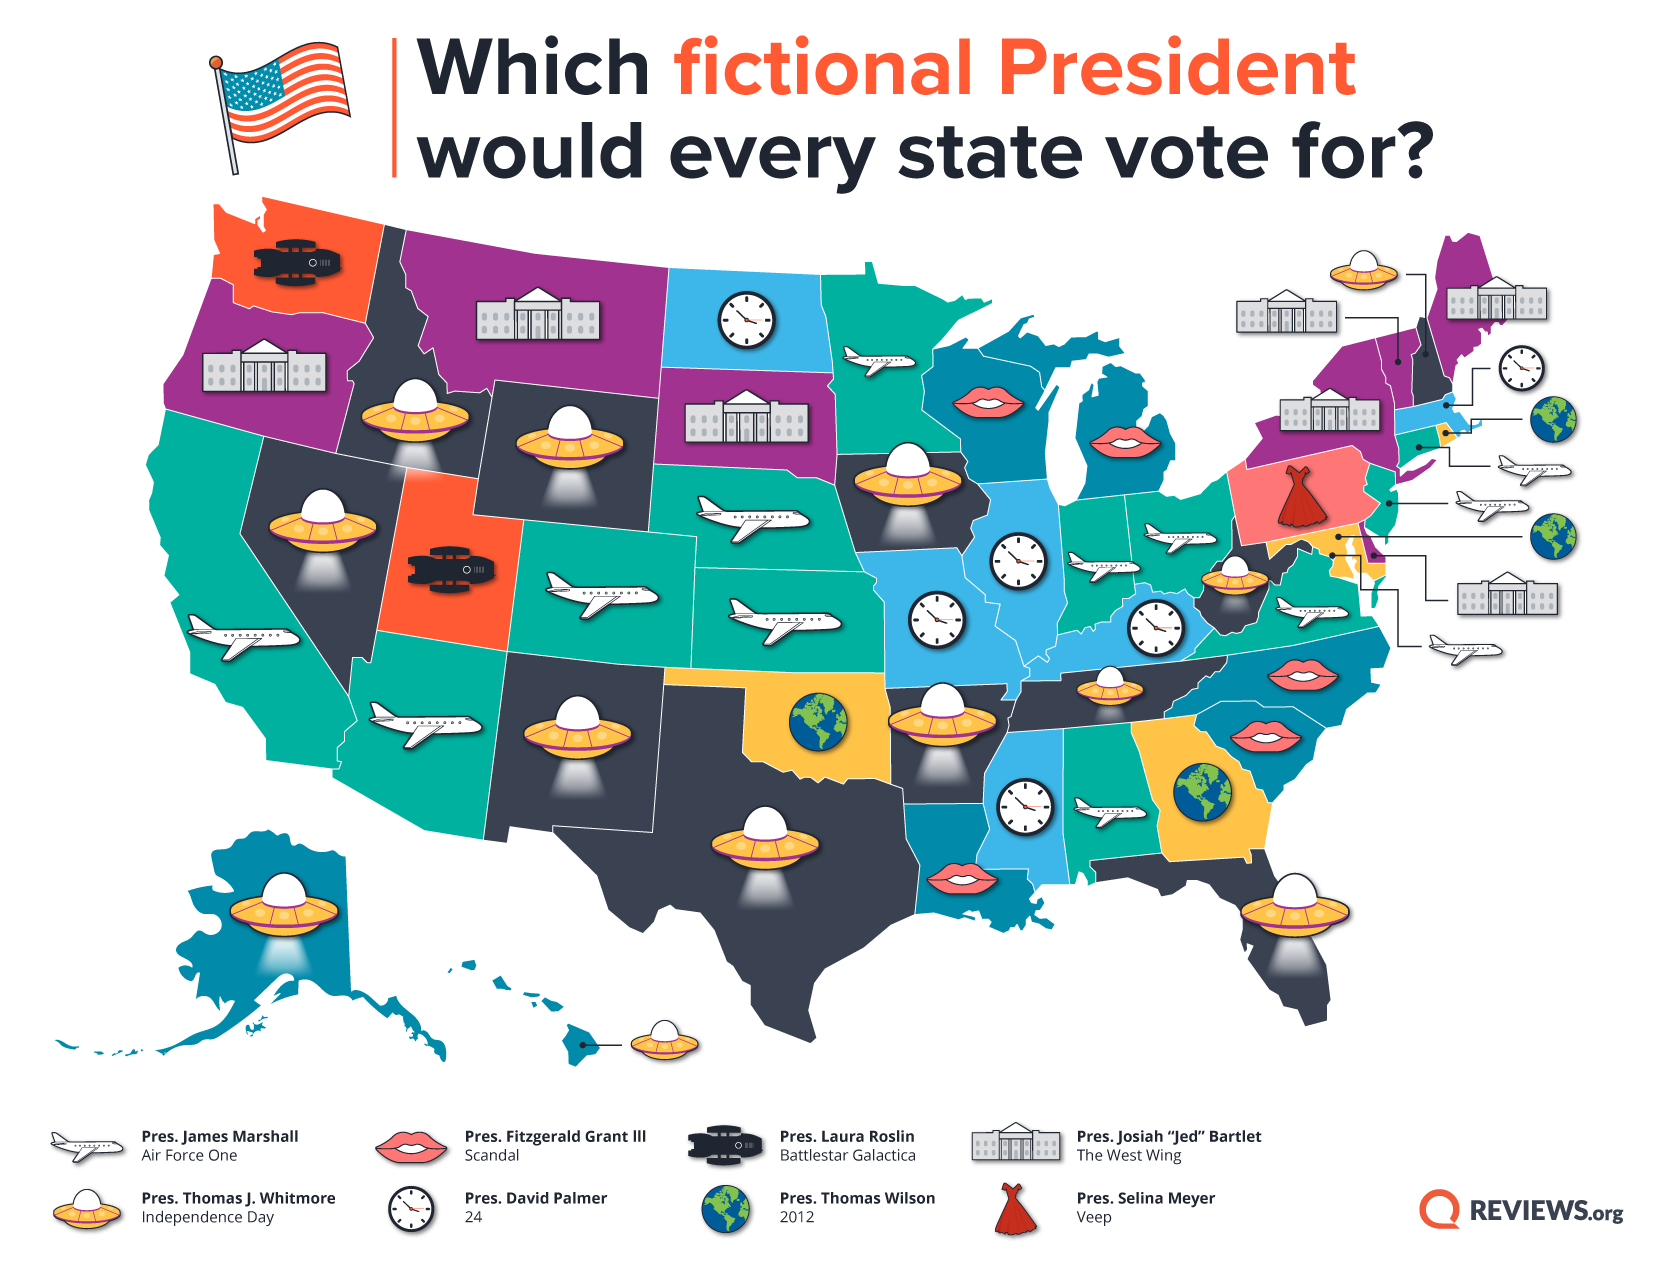 Map of every state's favorite fictional president.